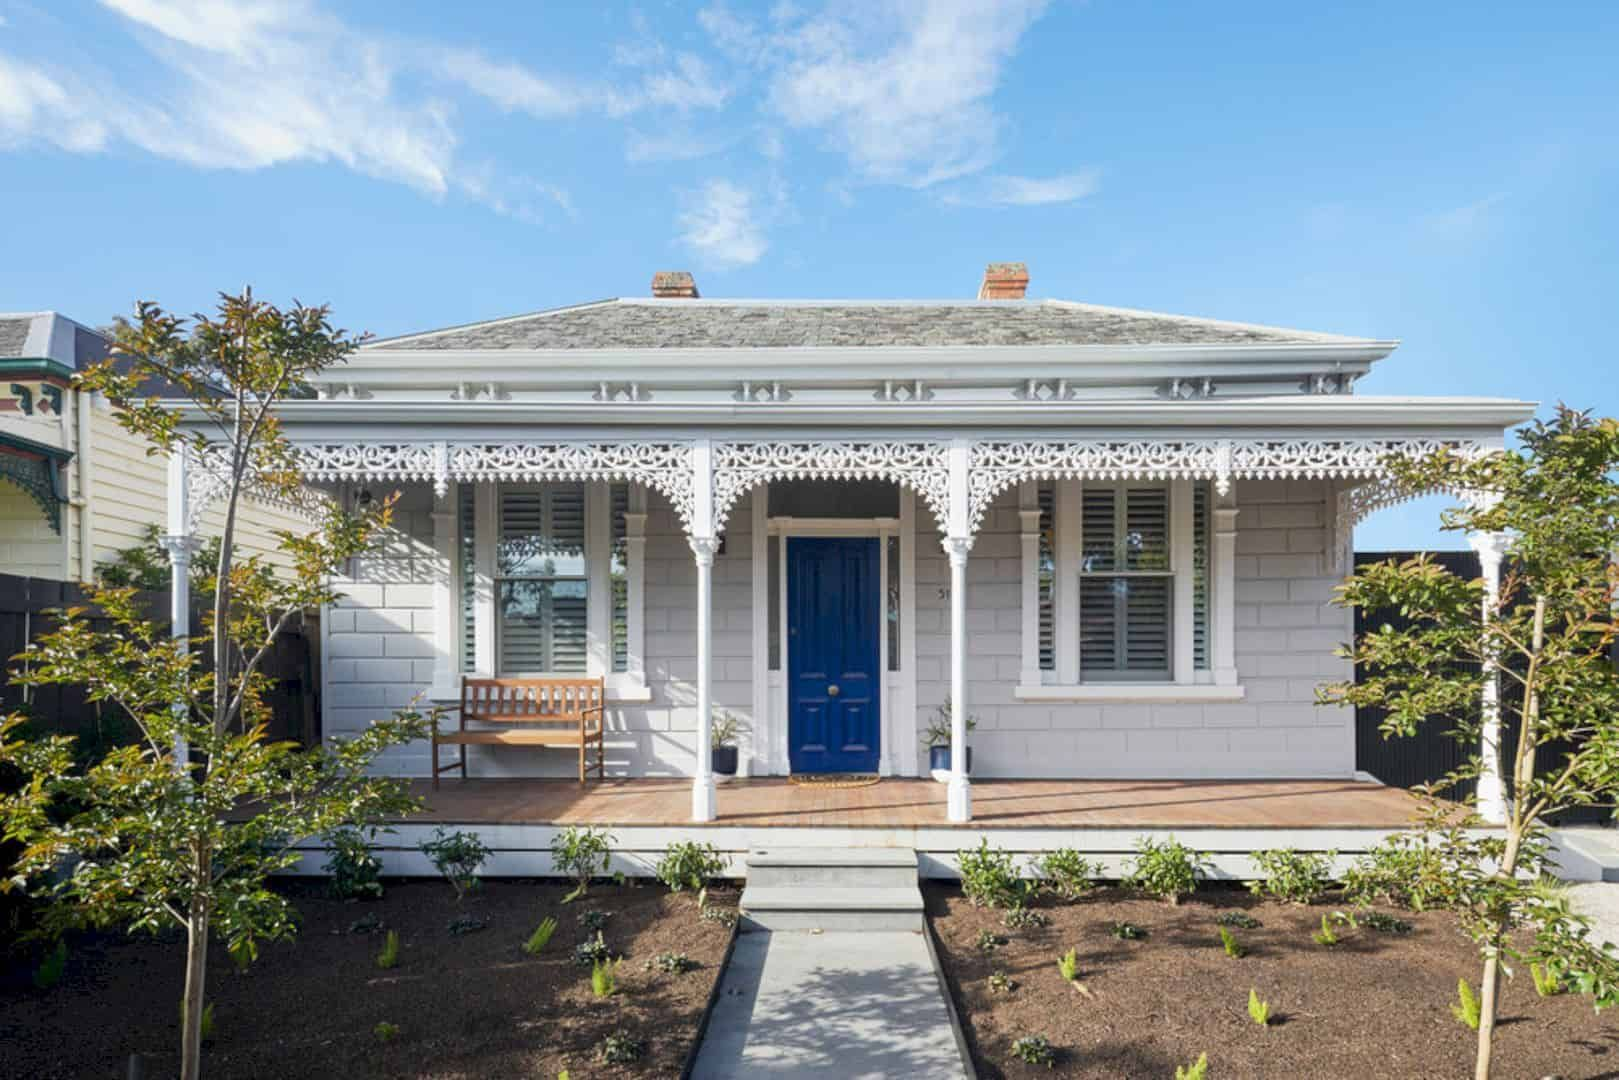 Roseberry Street House Hawthorn East A Double Fronted Victorian Terrace House With A Spacious Light Filled Modern Extension In 2020 Victorian Terrace House Victorian Terrace Terrace House